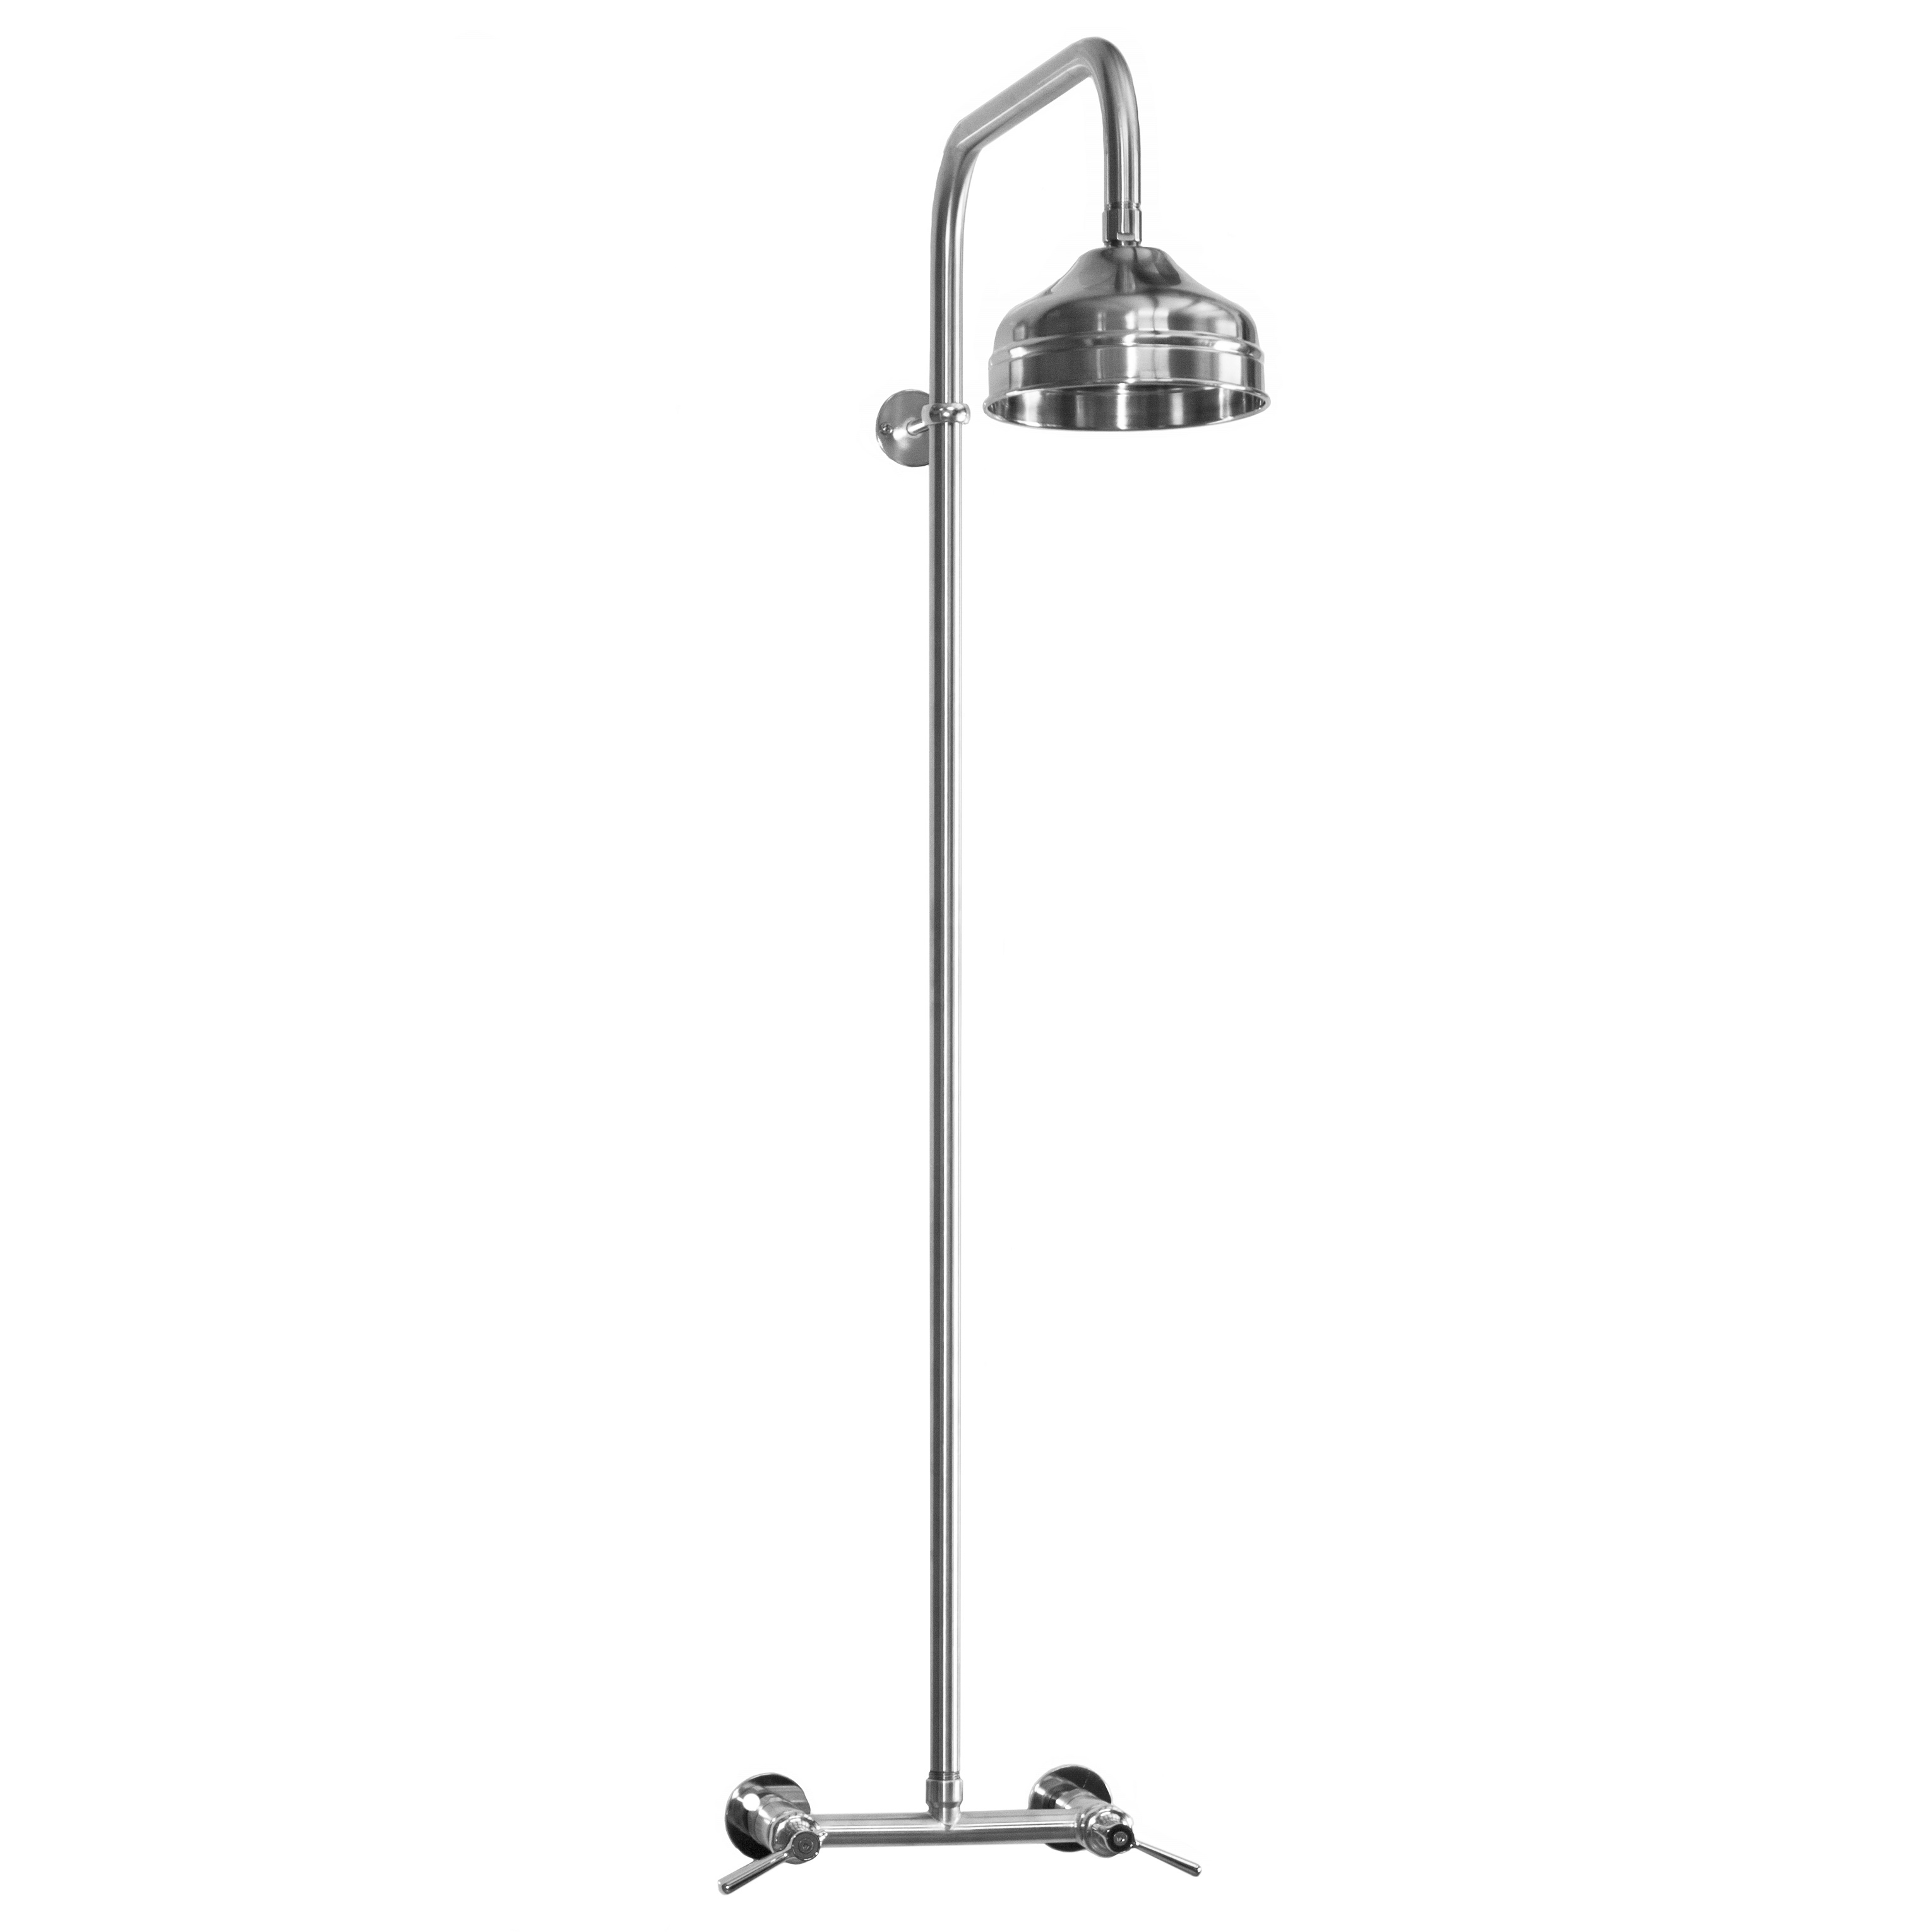 Outdoor Shower Company WMHC-445-SS Wall Mount Hot & Cold Shower